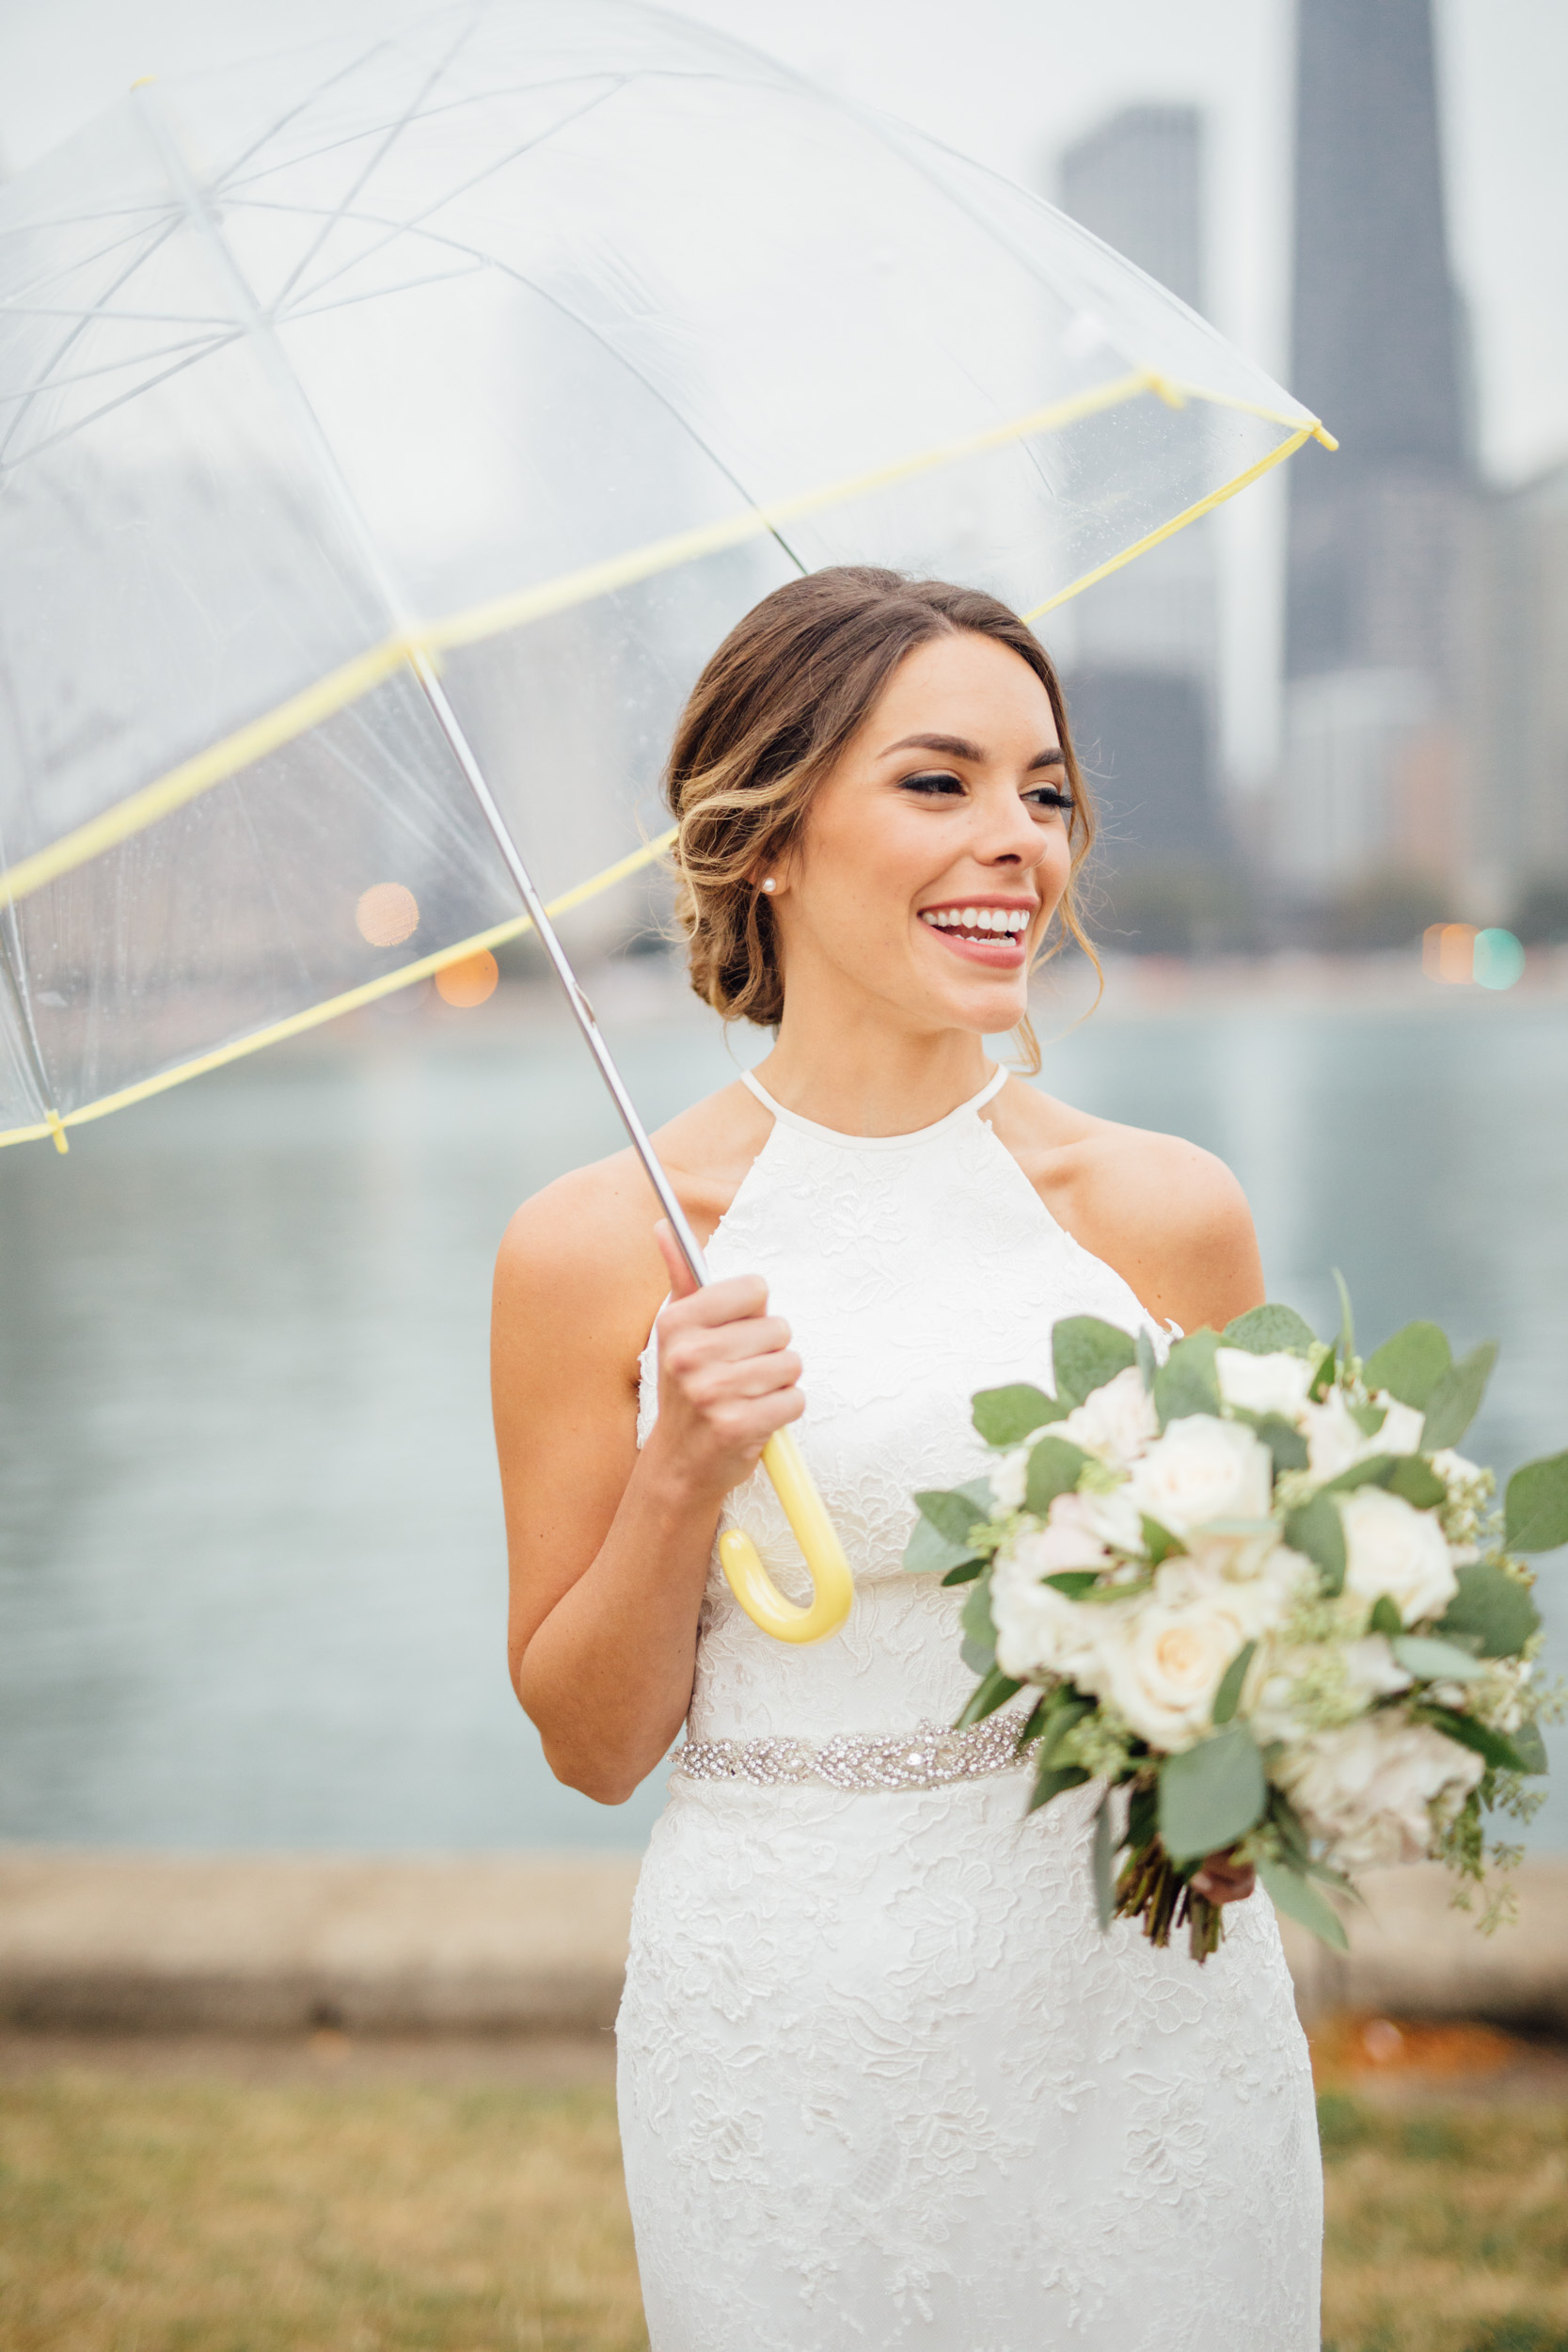 Downtown Chicago Wedding_Polly C Photography 1706171856.jpg